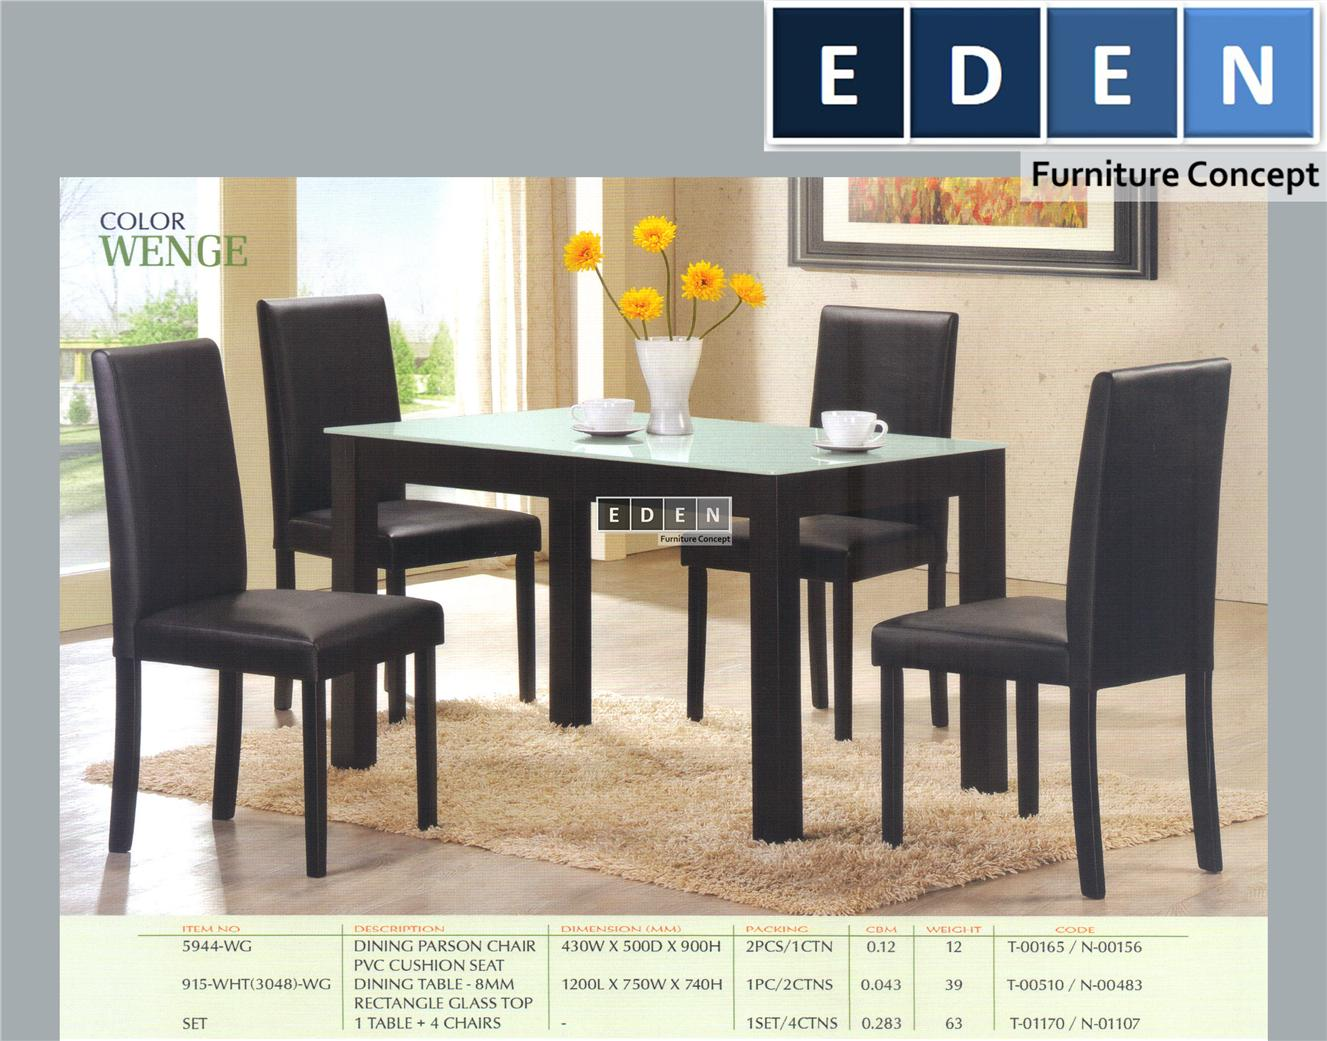 Furniture Malaysia Kitchen Dining Table Set Meja Makan 915whts